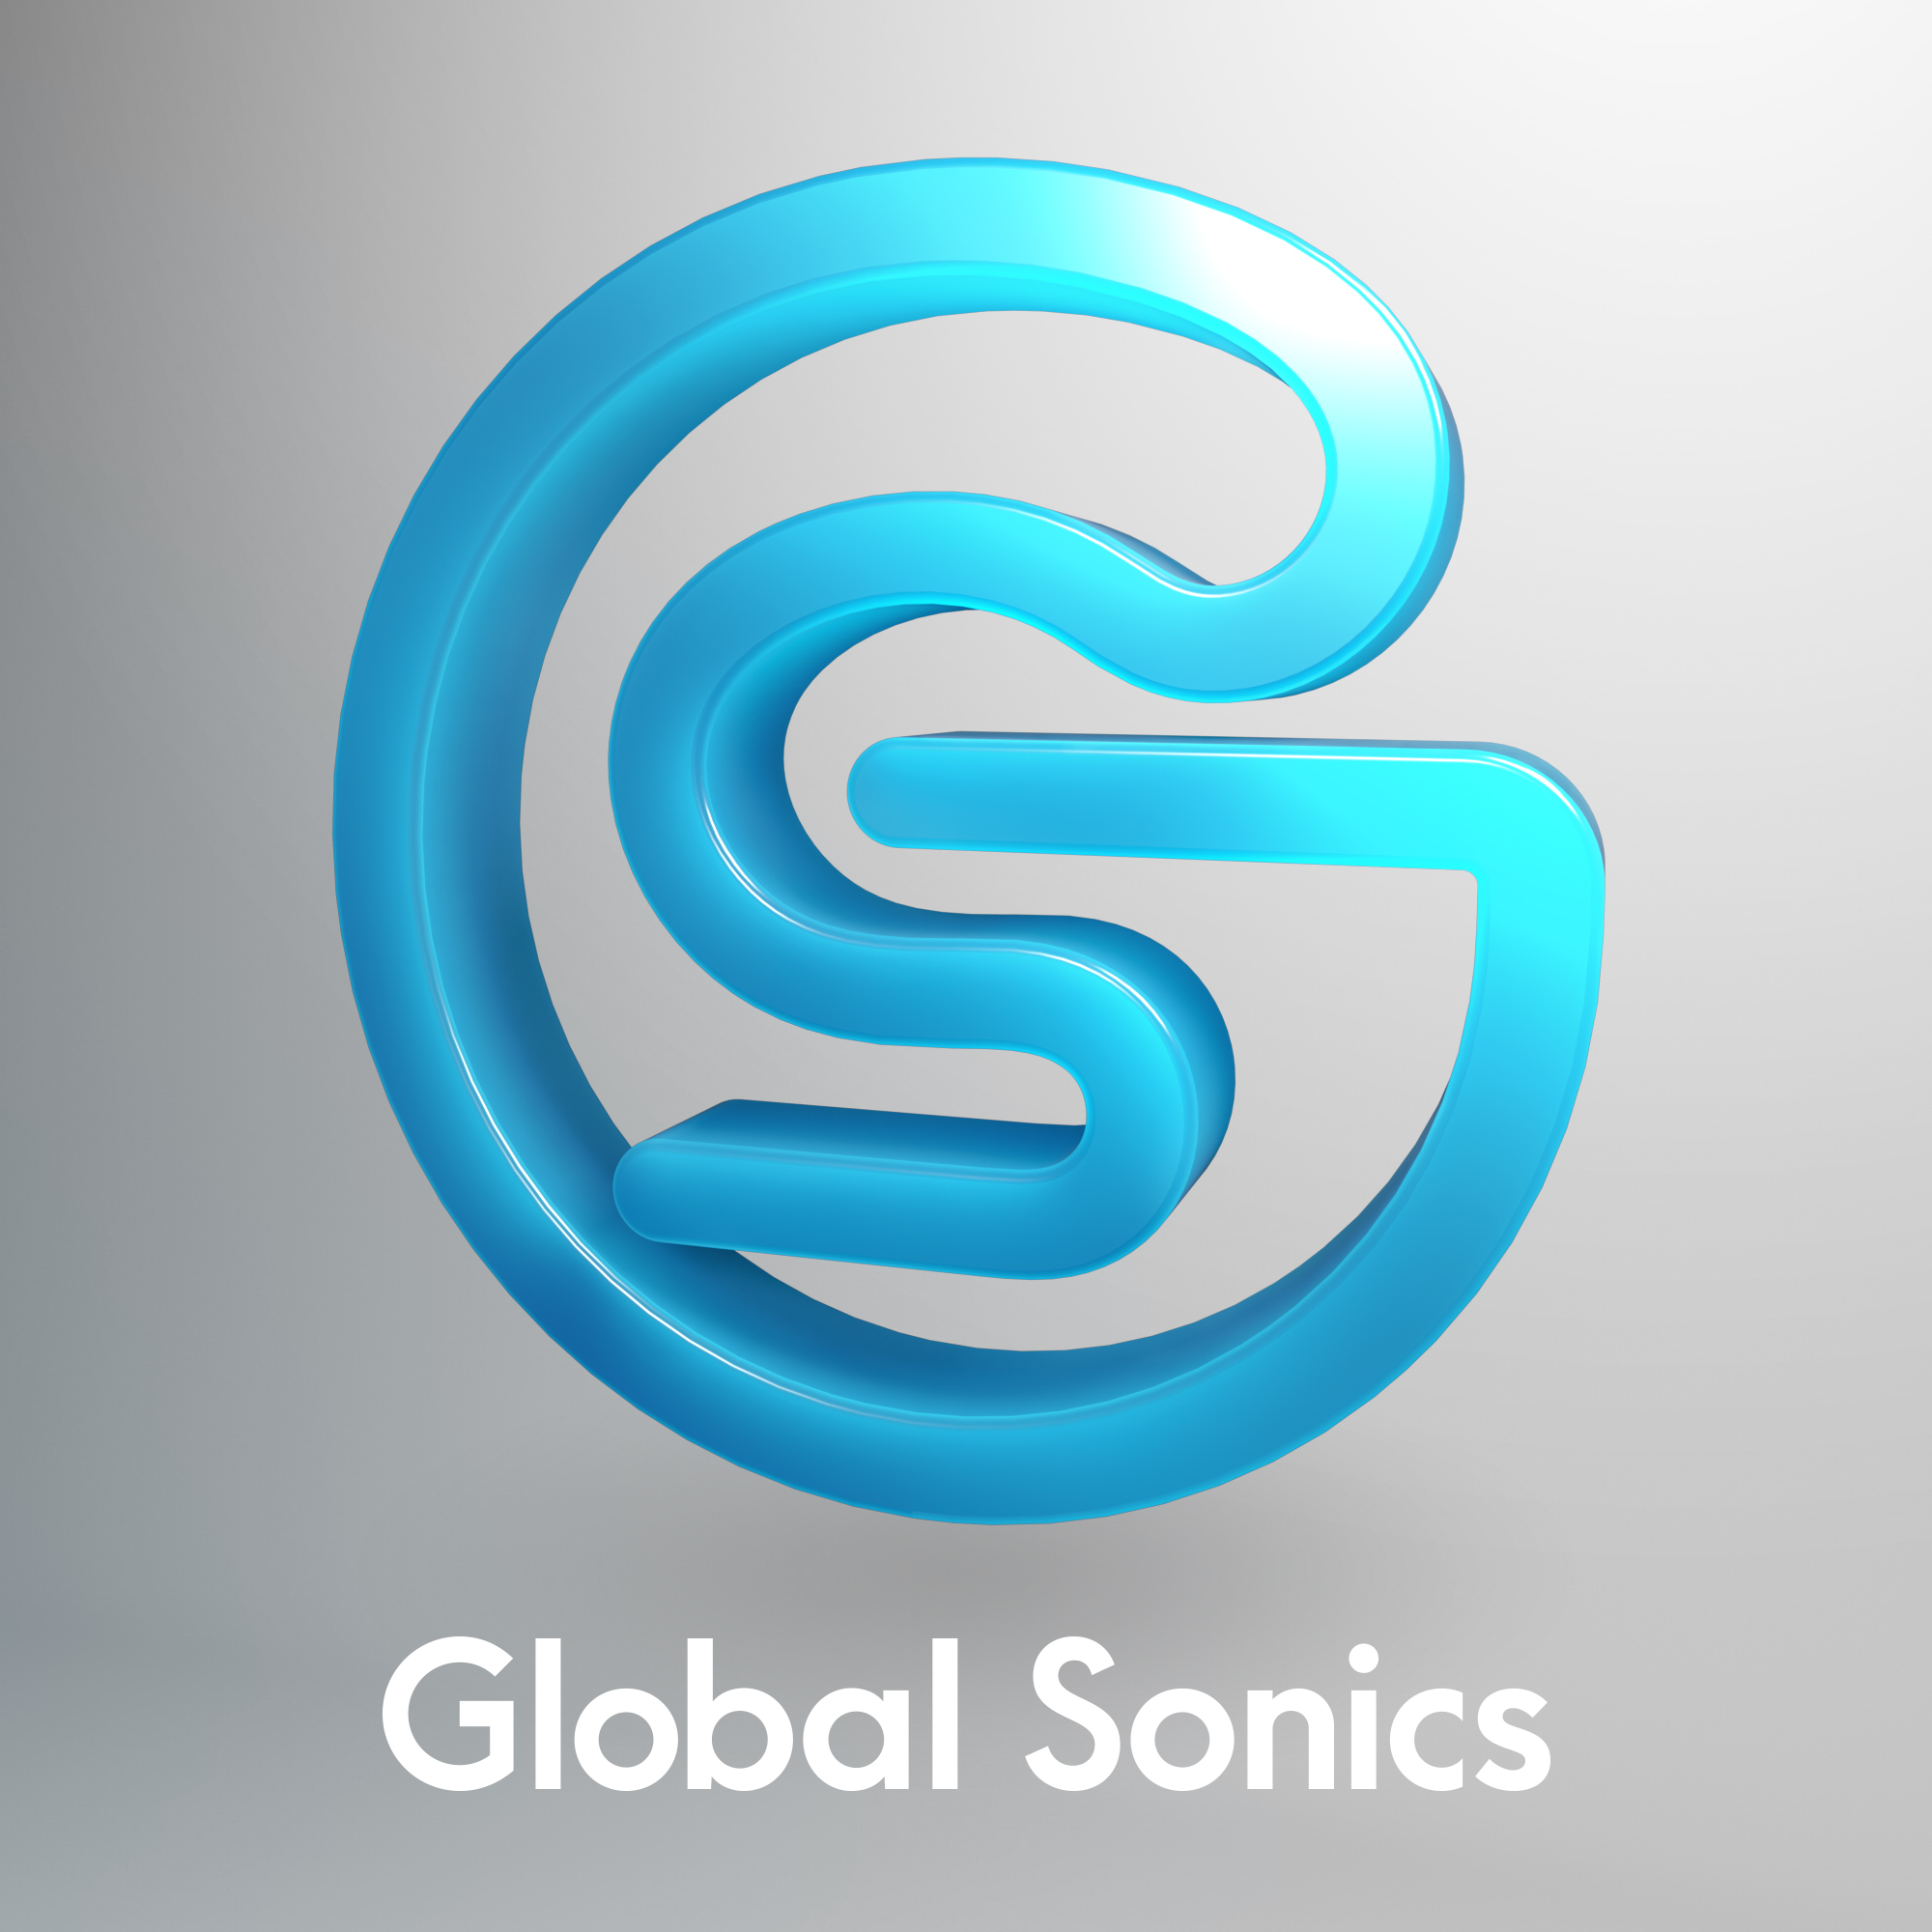 Global Sonics - 3D logo, grey background and white text